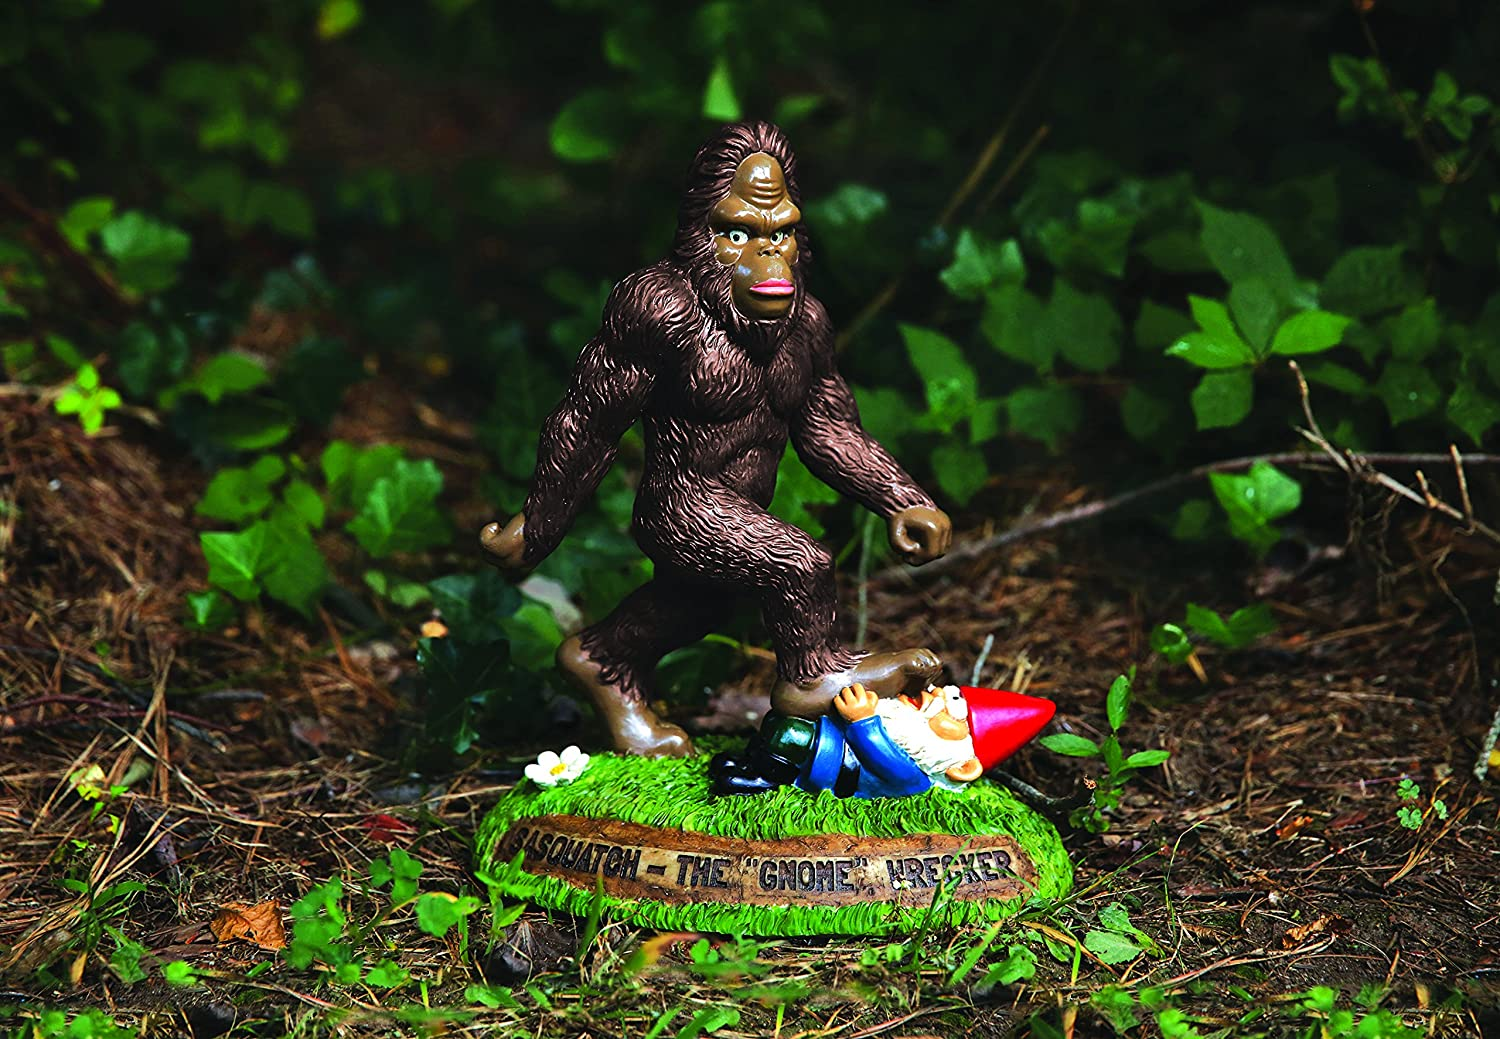 Sasquatch the Gnome Wrecker Garden Statue